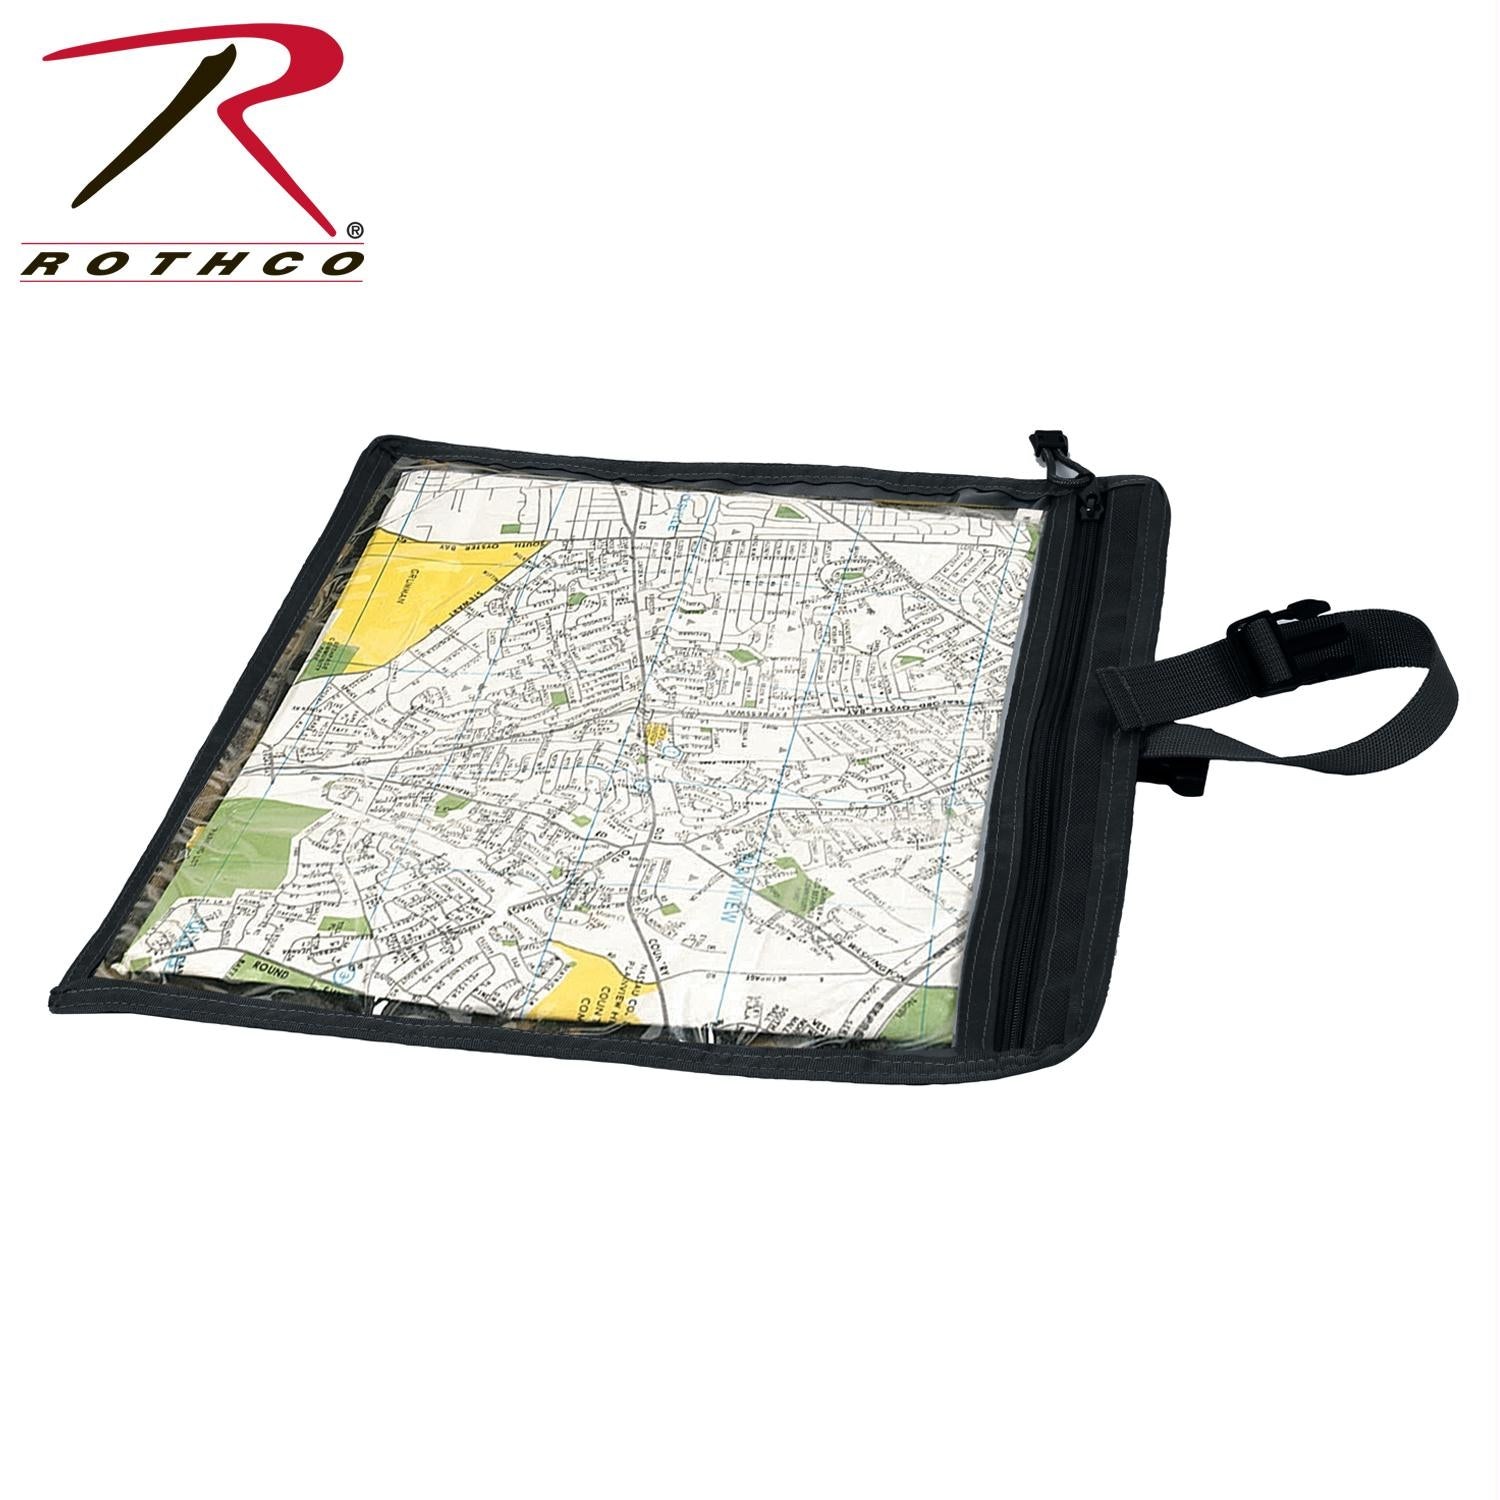 Rothco Map and Document Case - Black